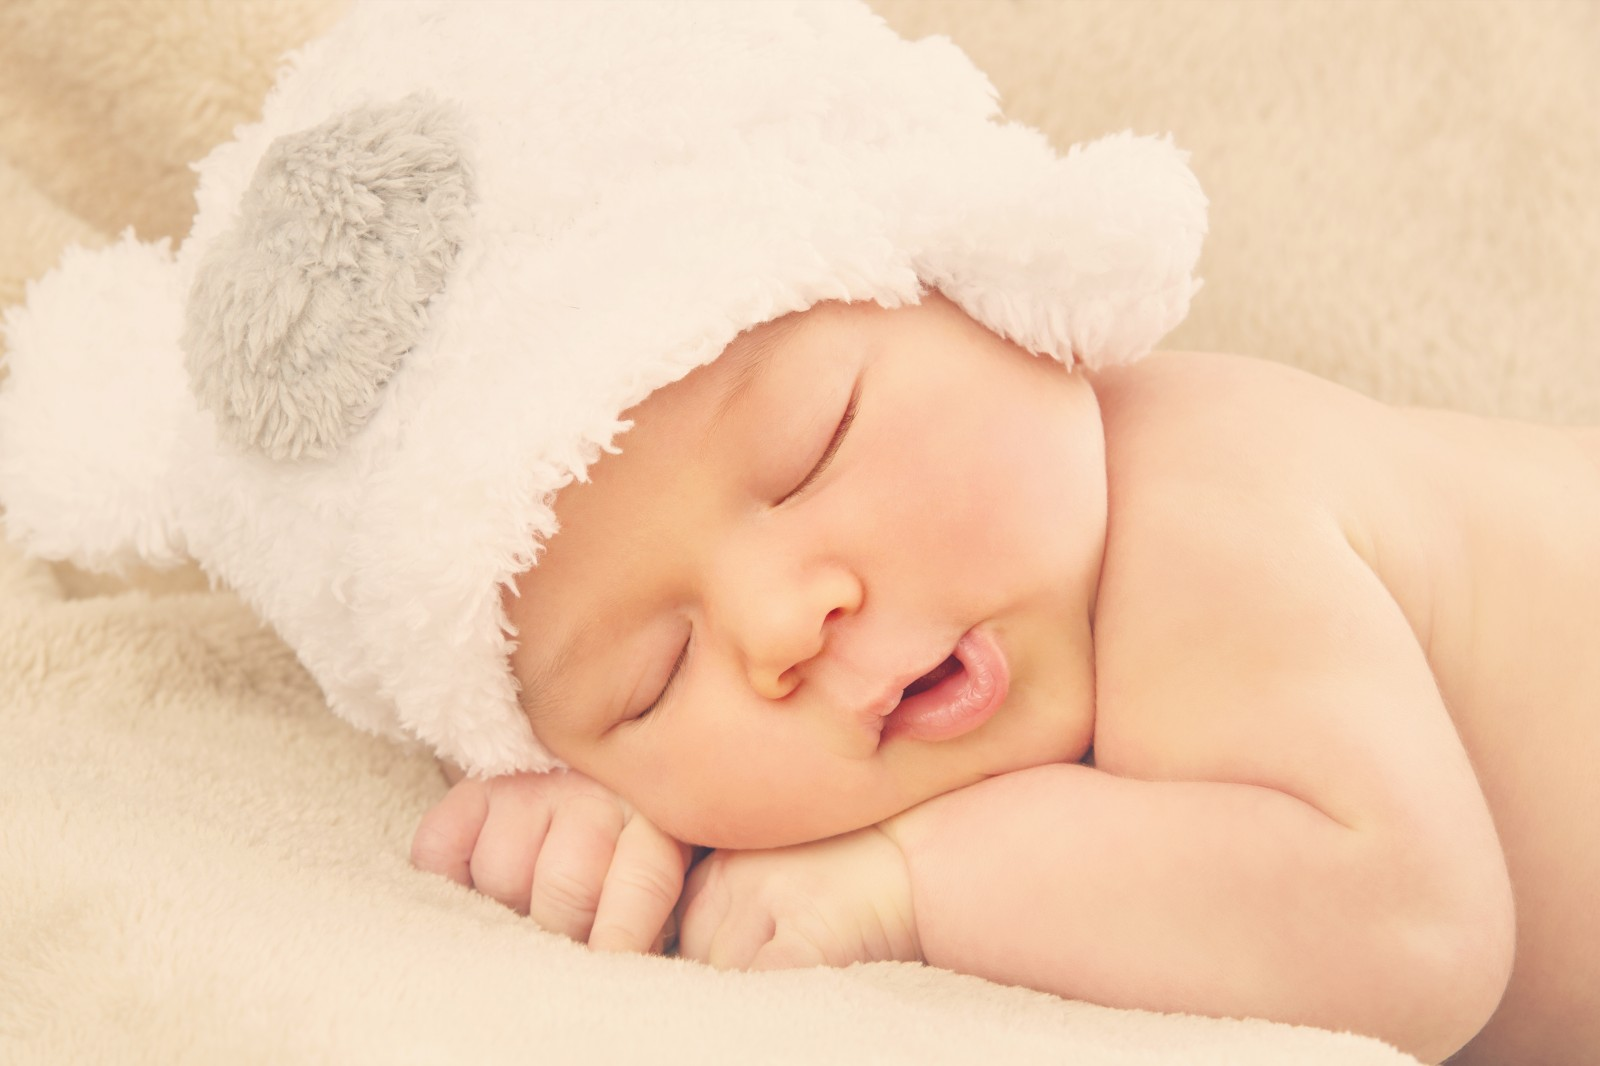 Cute Babies Sleeping Images: Sleeping Newborn Baby, Photos Of Your Dreams